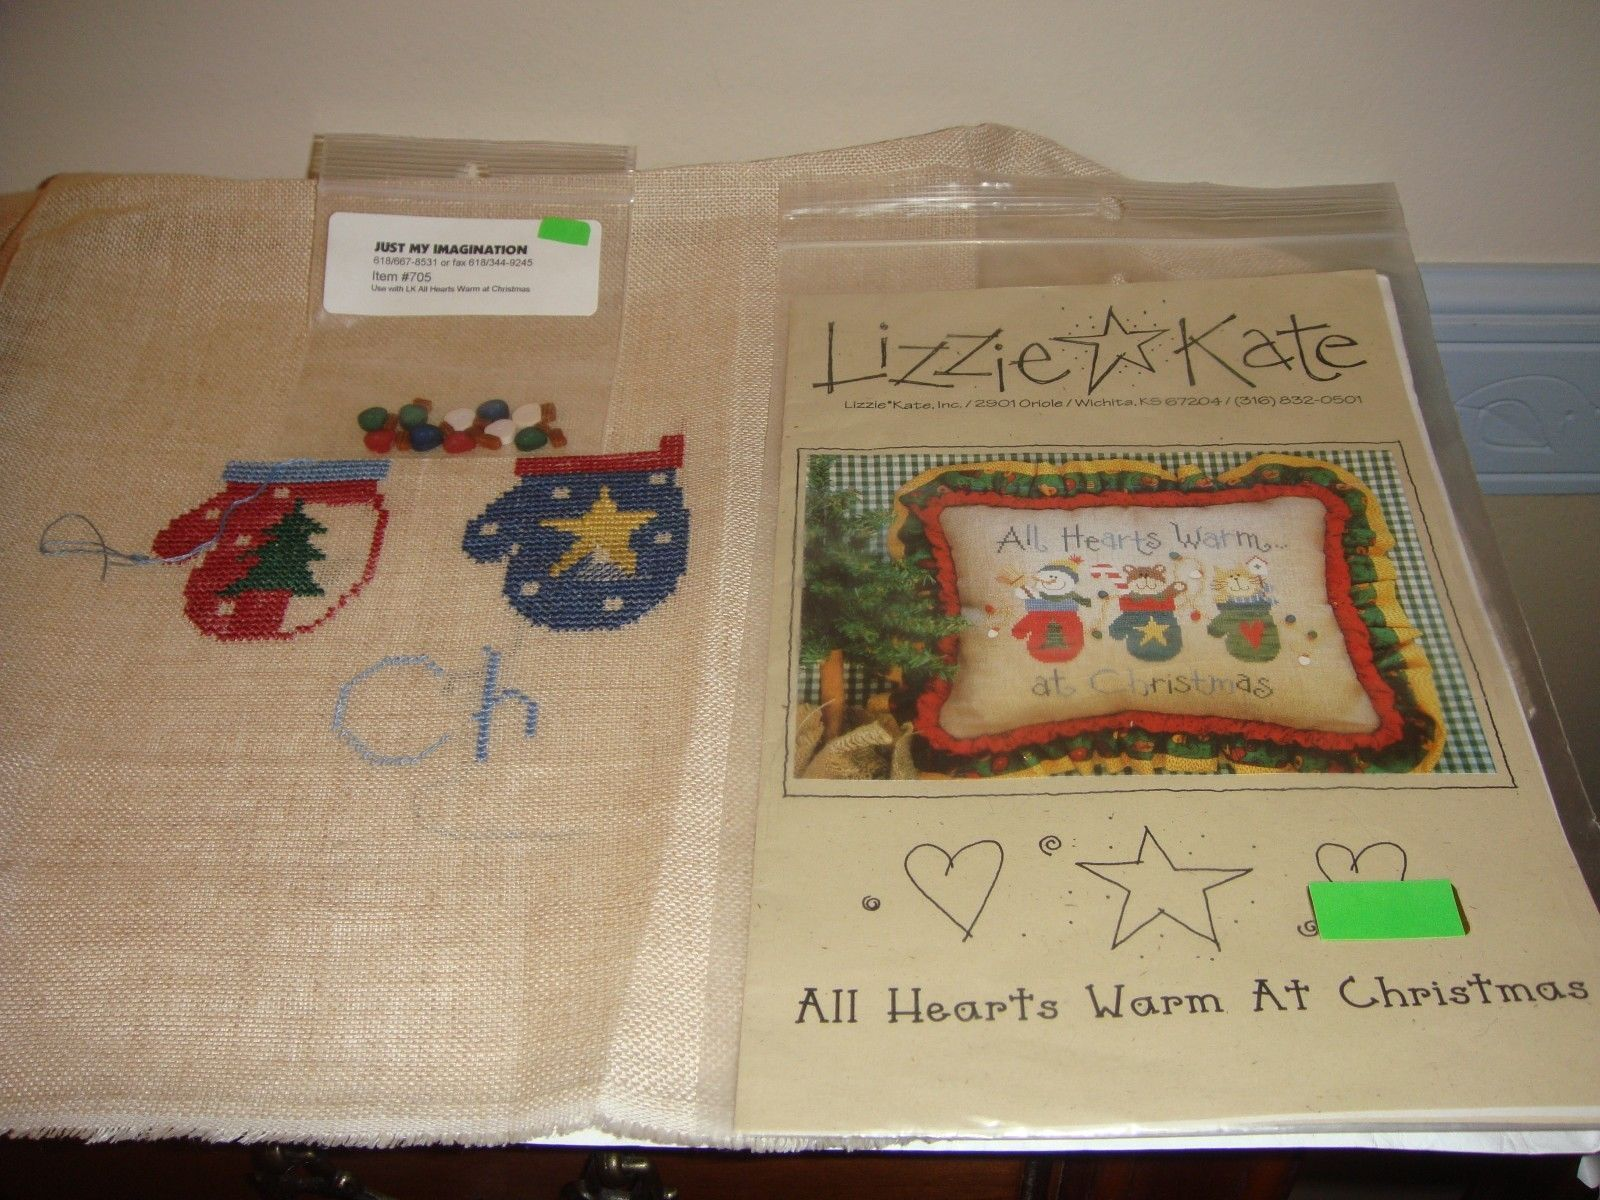 Lizzie Kate Cross Stitch All Hearts Warm At Christmas #61 Plus Fabric & Buttons image 2